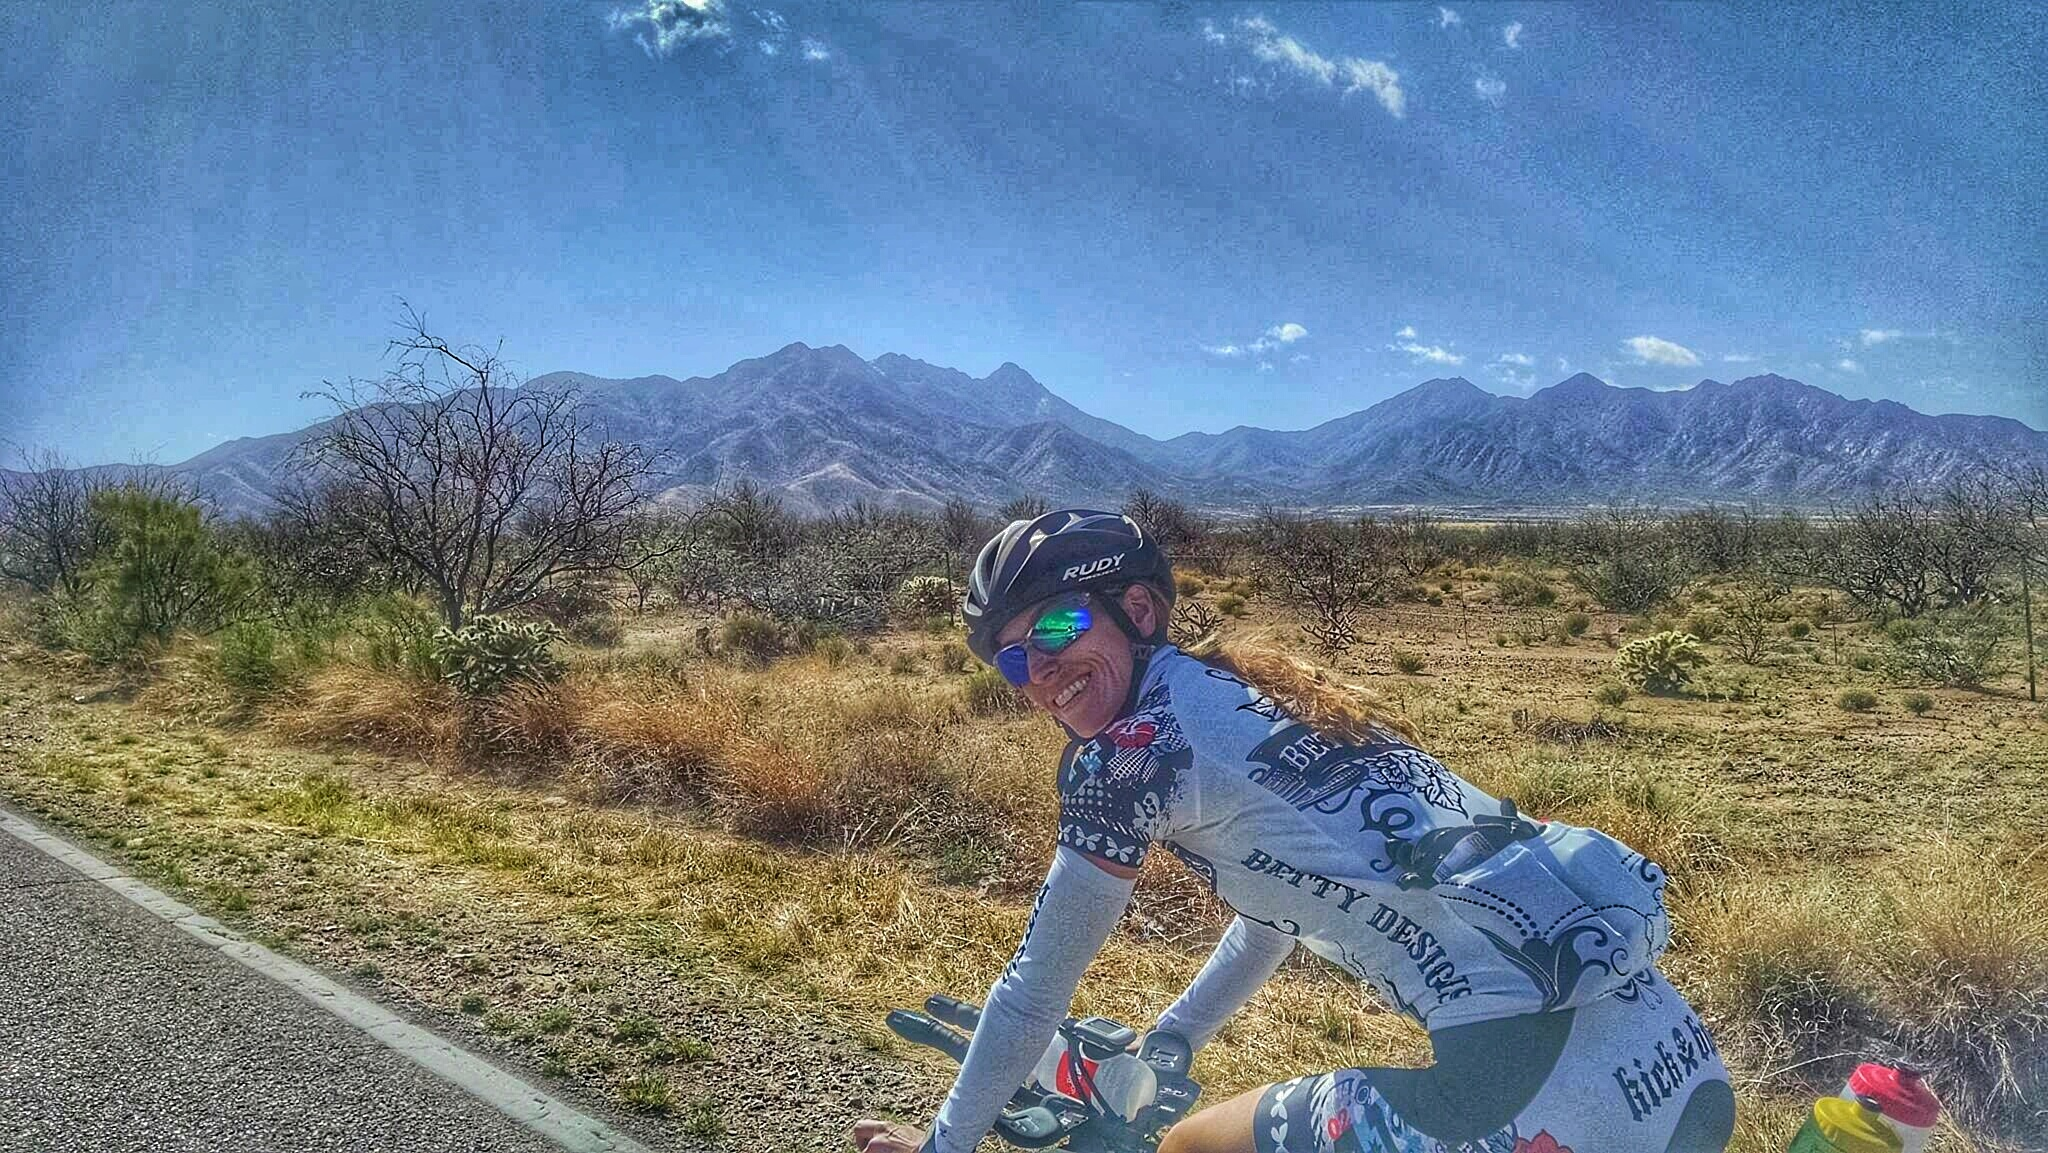 And then there are the trips where you are lucky enough to find yourself in Tucson on an 80 degree day in the middle of Winter. Definitely no need for trainer rides with this beautiful scenery surrounding us.